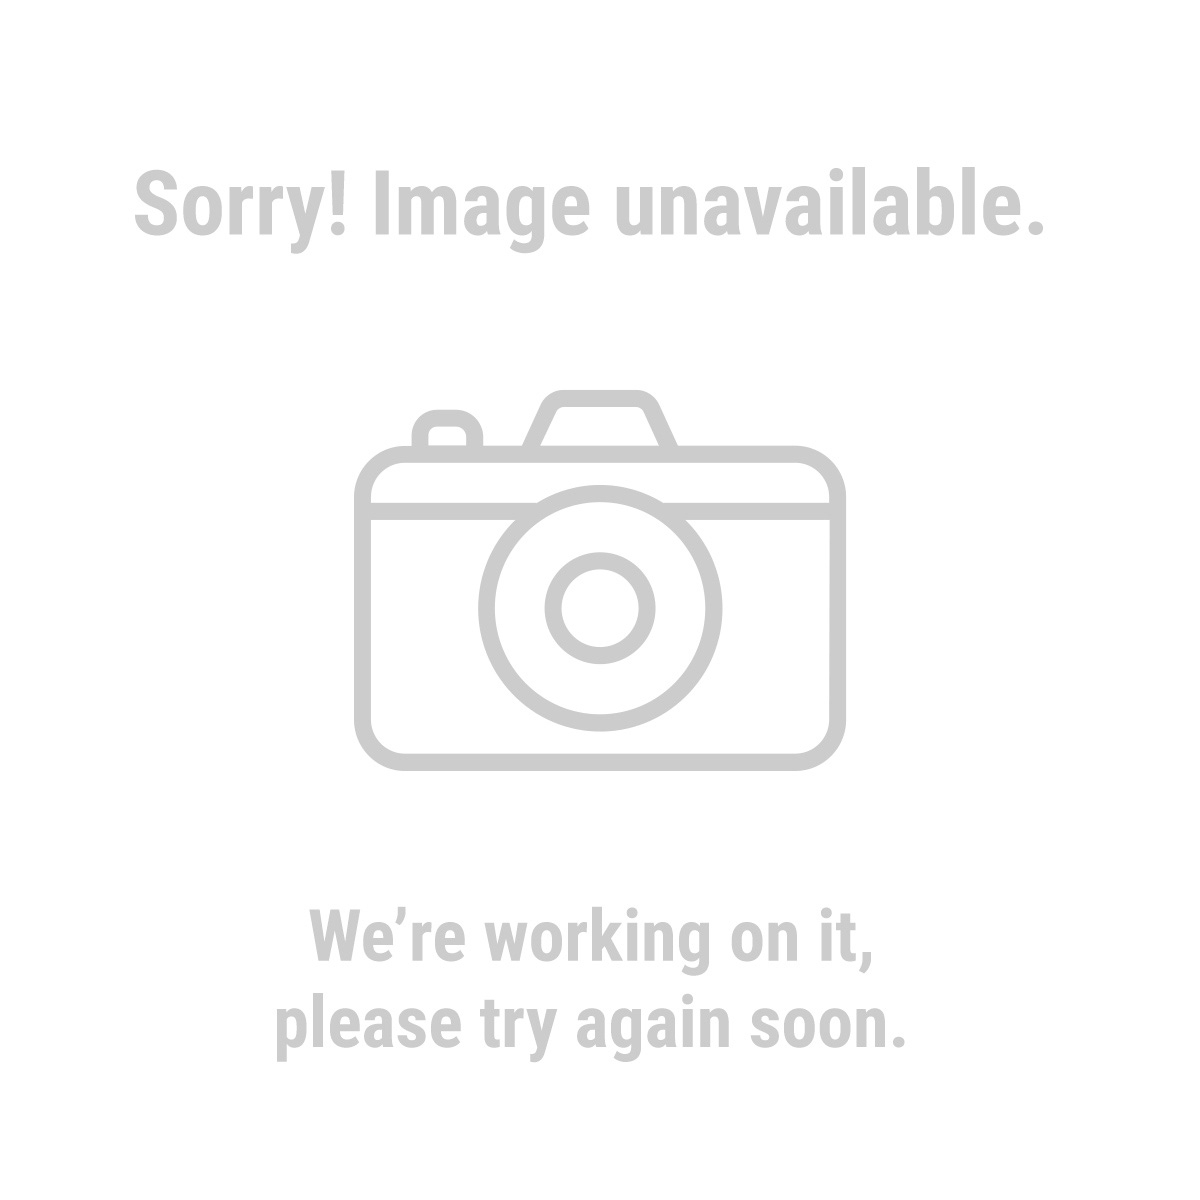 Chicago Electric Power Tools 61971 10 in. Sliding Compound Miter Saw